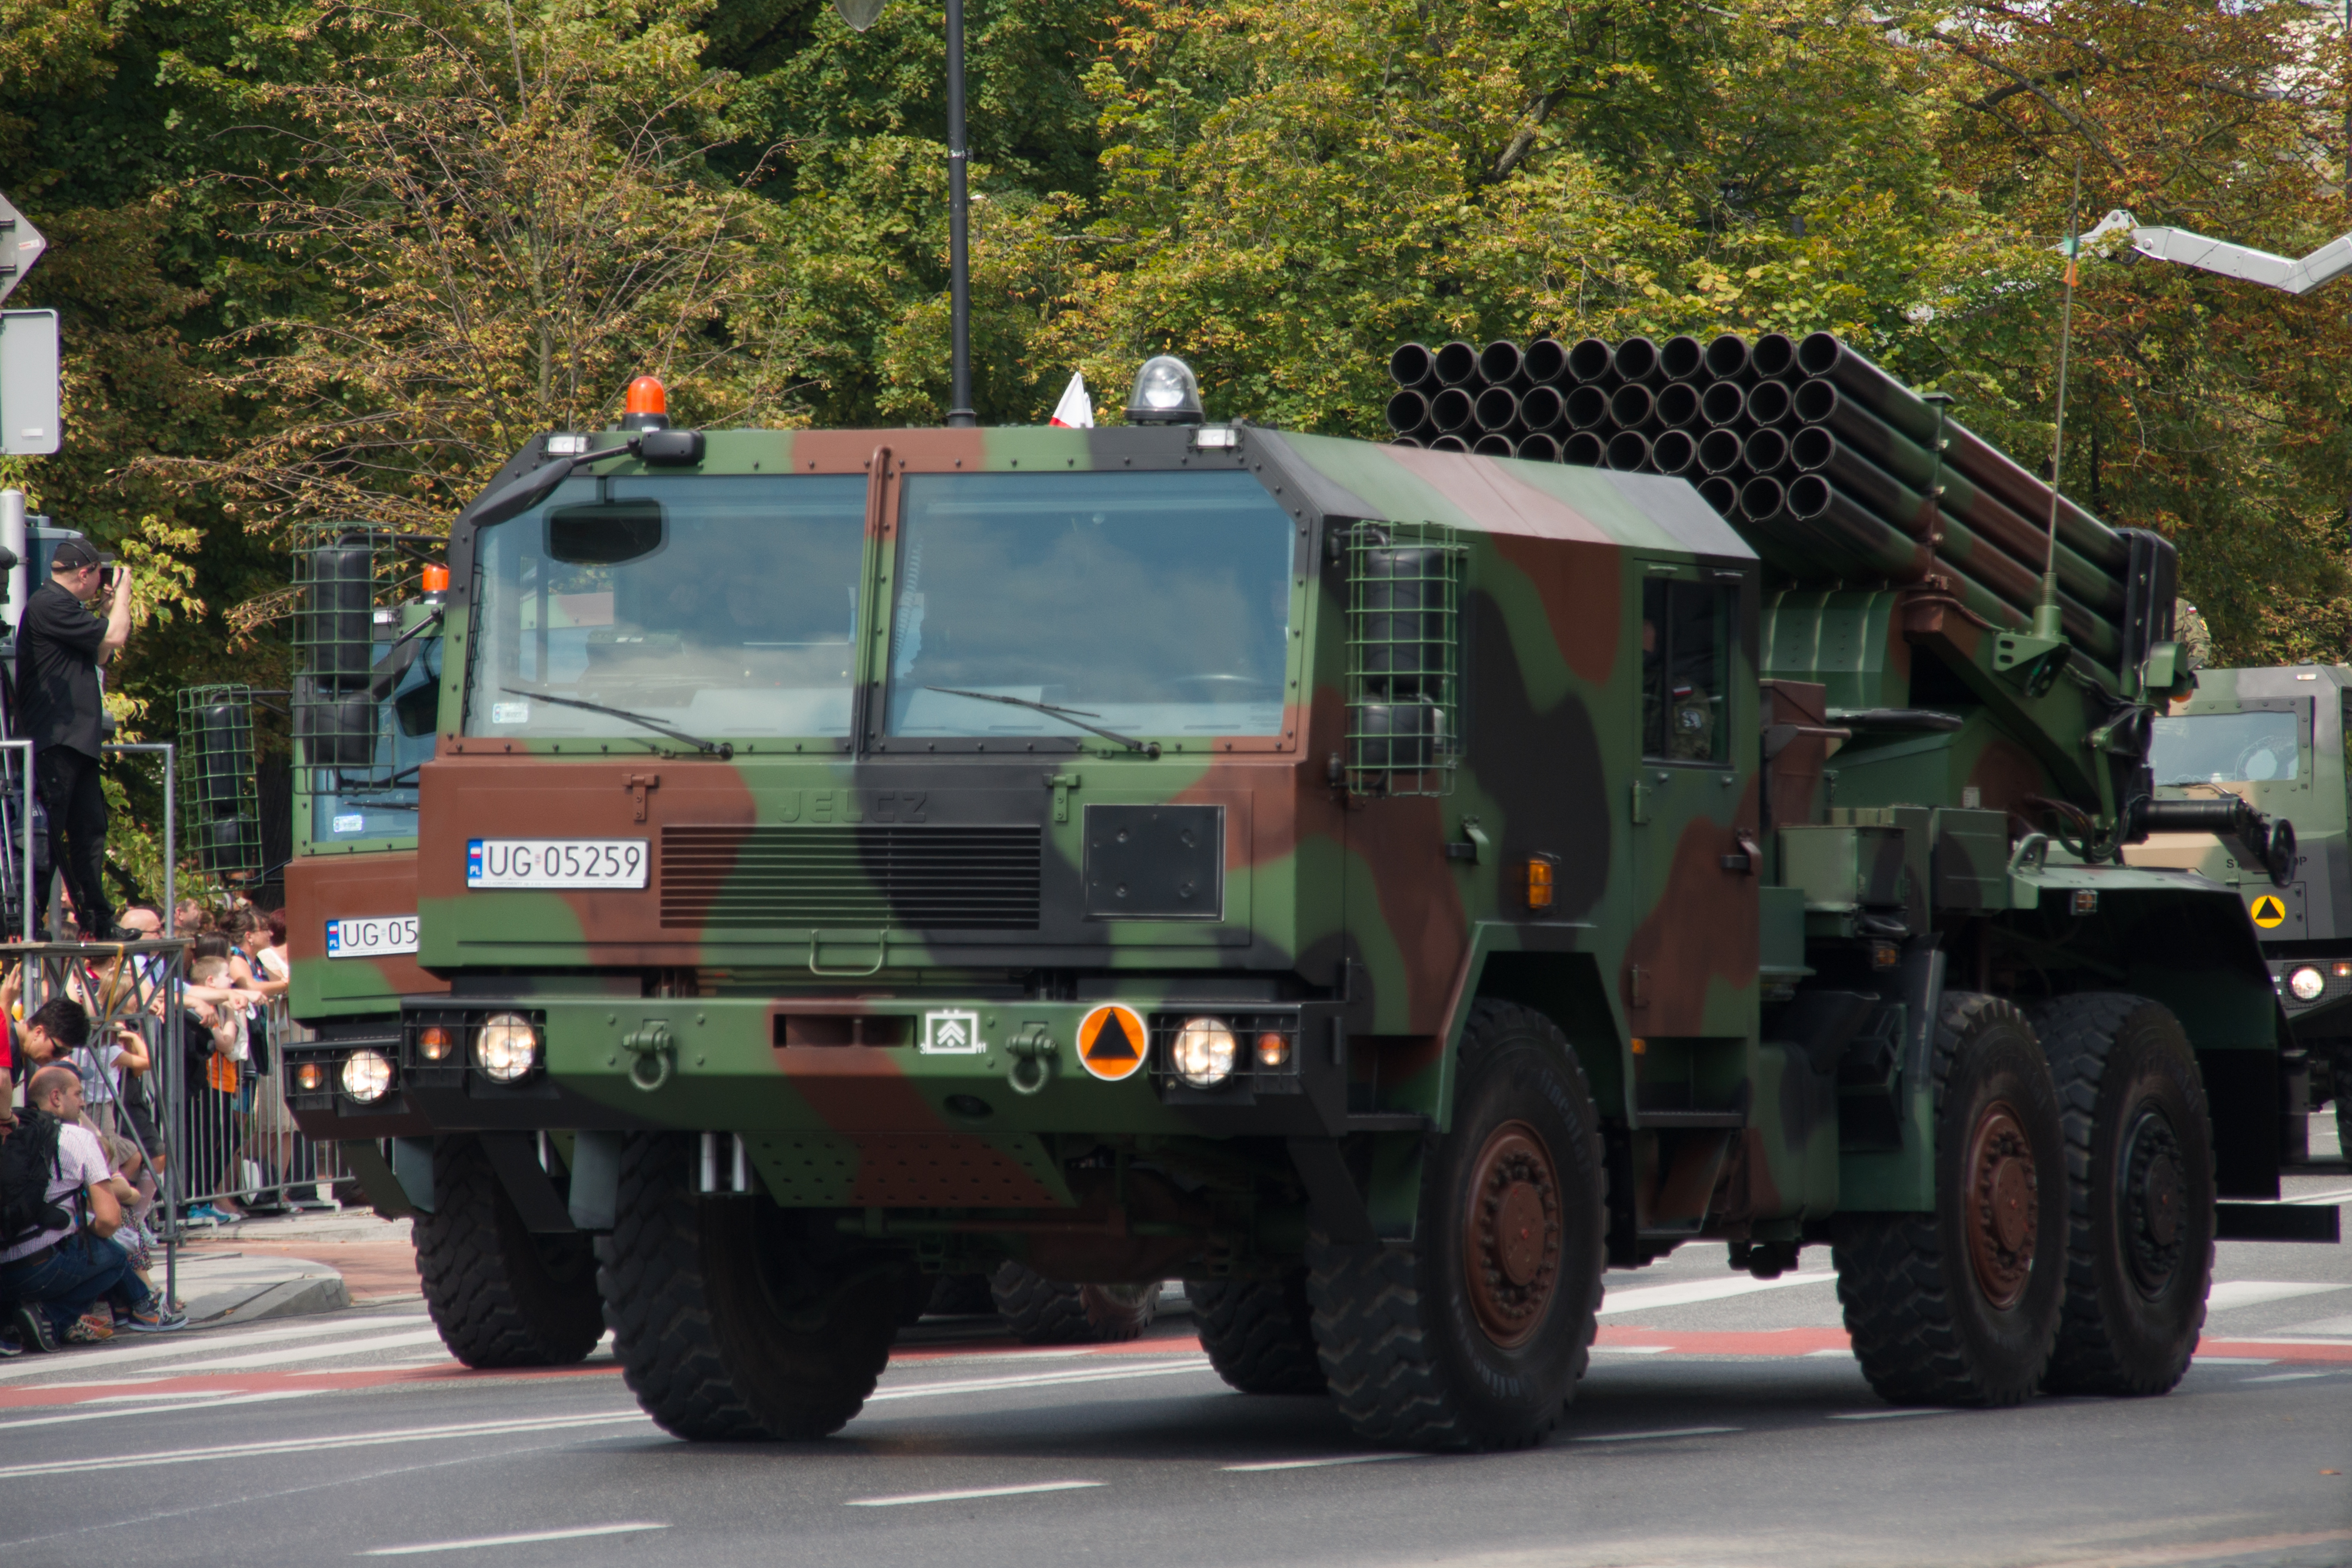 WR-40s during a Polish military parade.